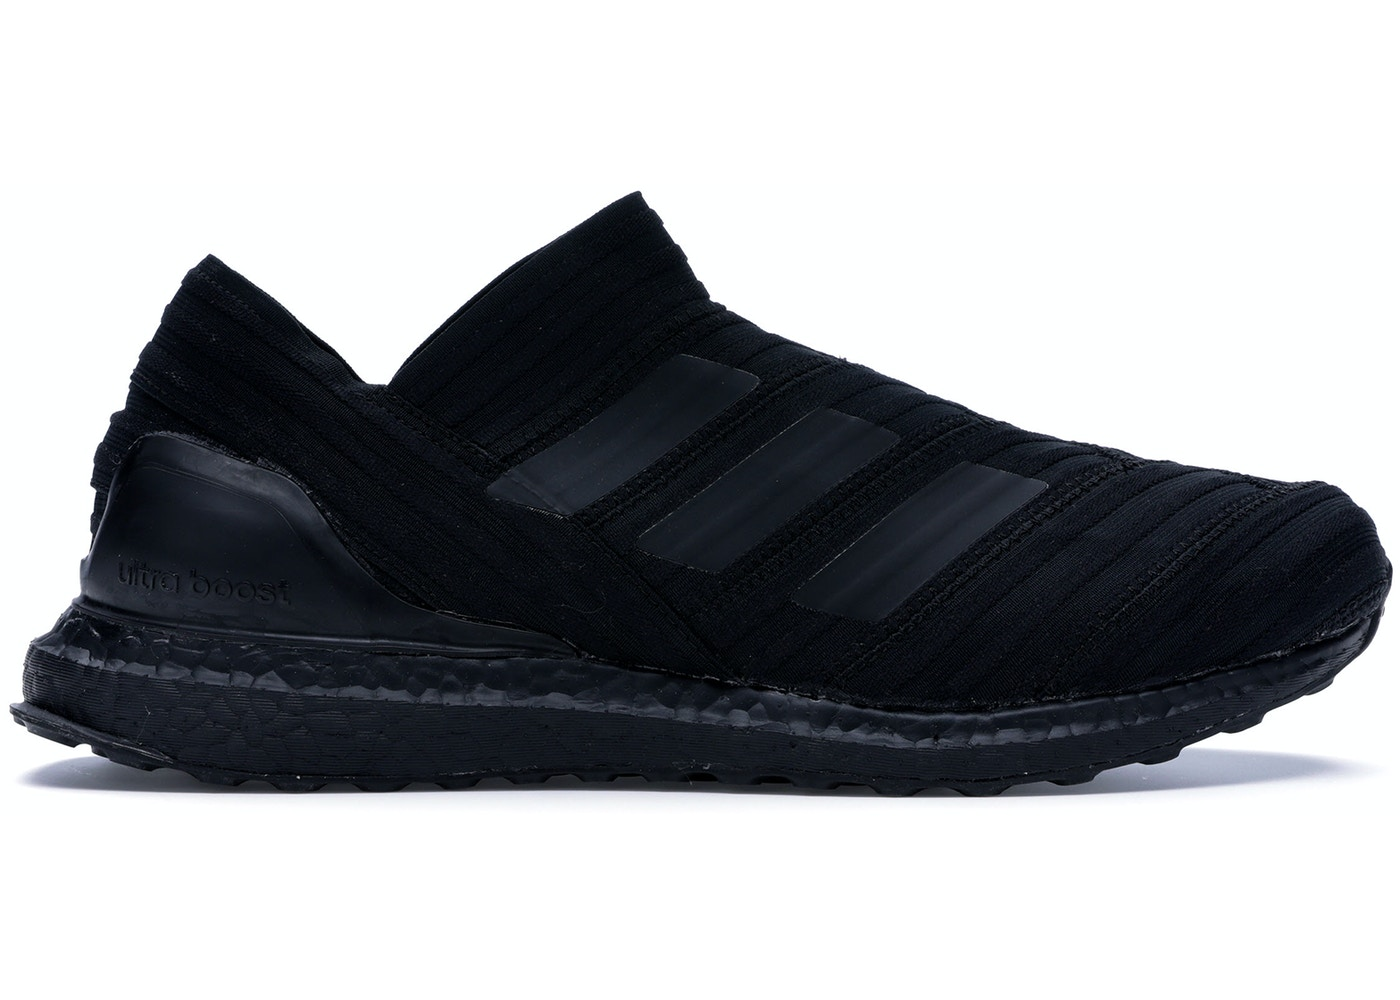 wholesale dealer 189a2 a73a9 Buy adidas Ultra Boost Shoes & Deadstock Sneakers